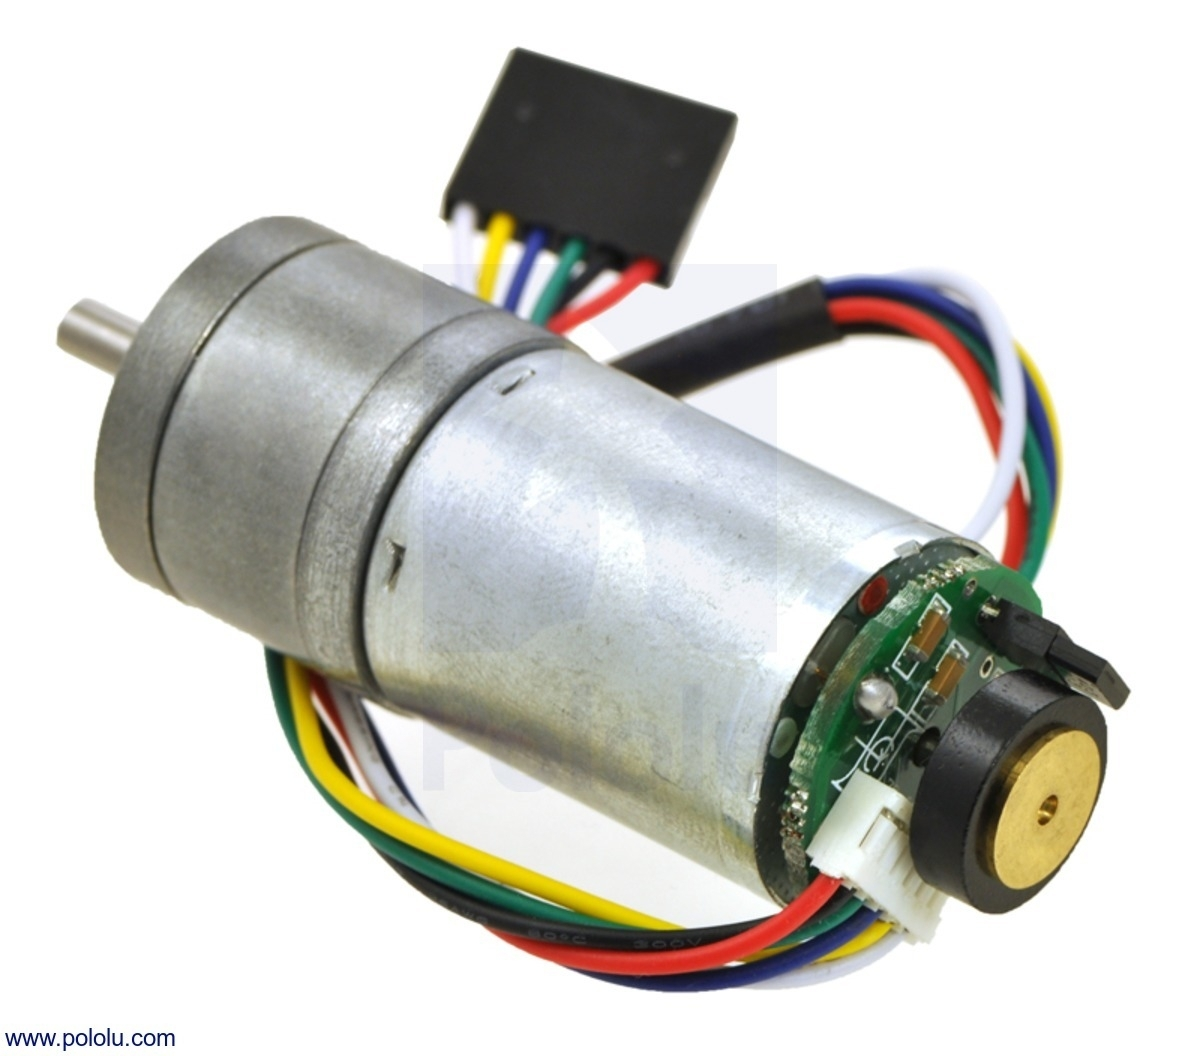 hight resolution of 4 4 1 metal gearmotor 25dx48l mm hp 12v with 48 cpr encoder